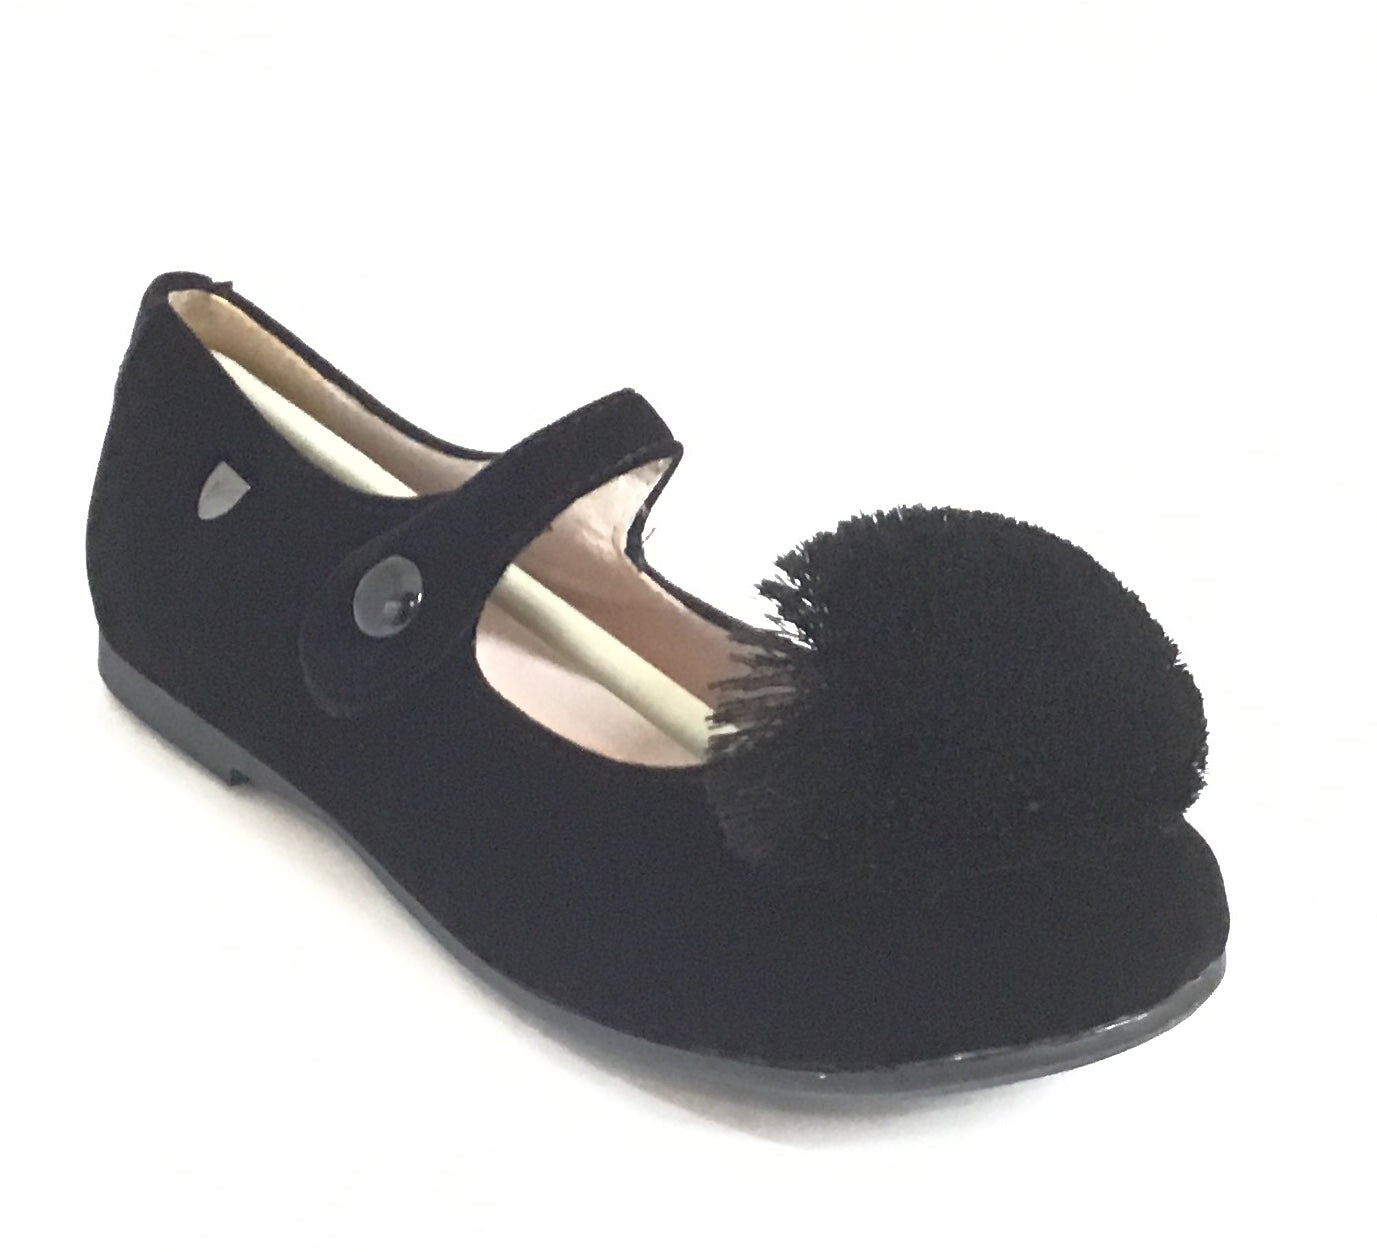 Venettini Black Velvet Mary Jane With Pom Pom